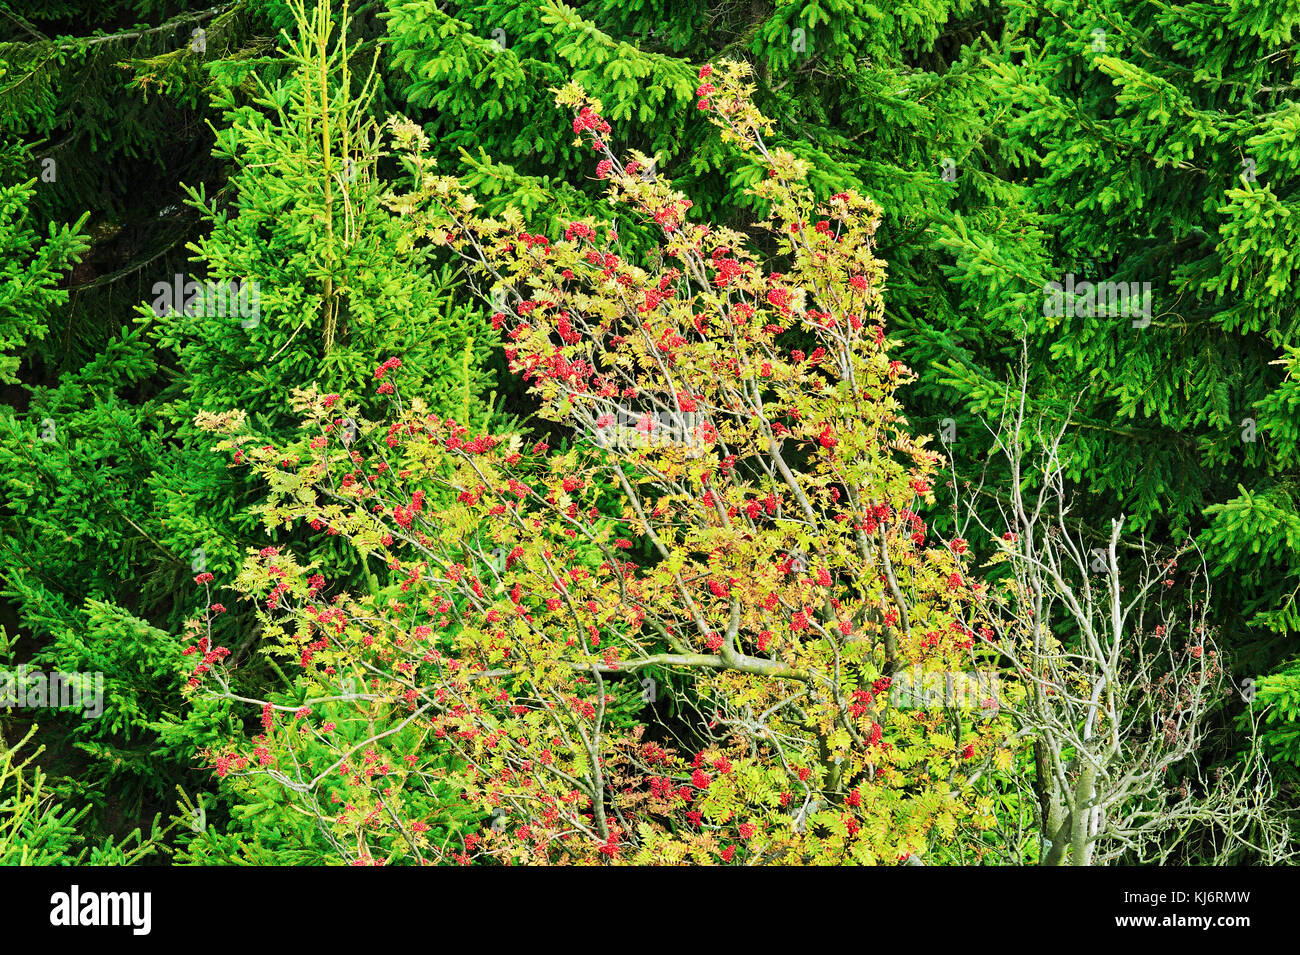 Sorbus aucuparia, rowan or mountain-ash tree canopy with red fruits against spruce trees. Rowan tree crown. Natural - Stock Image